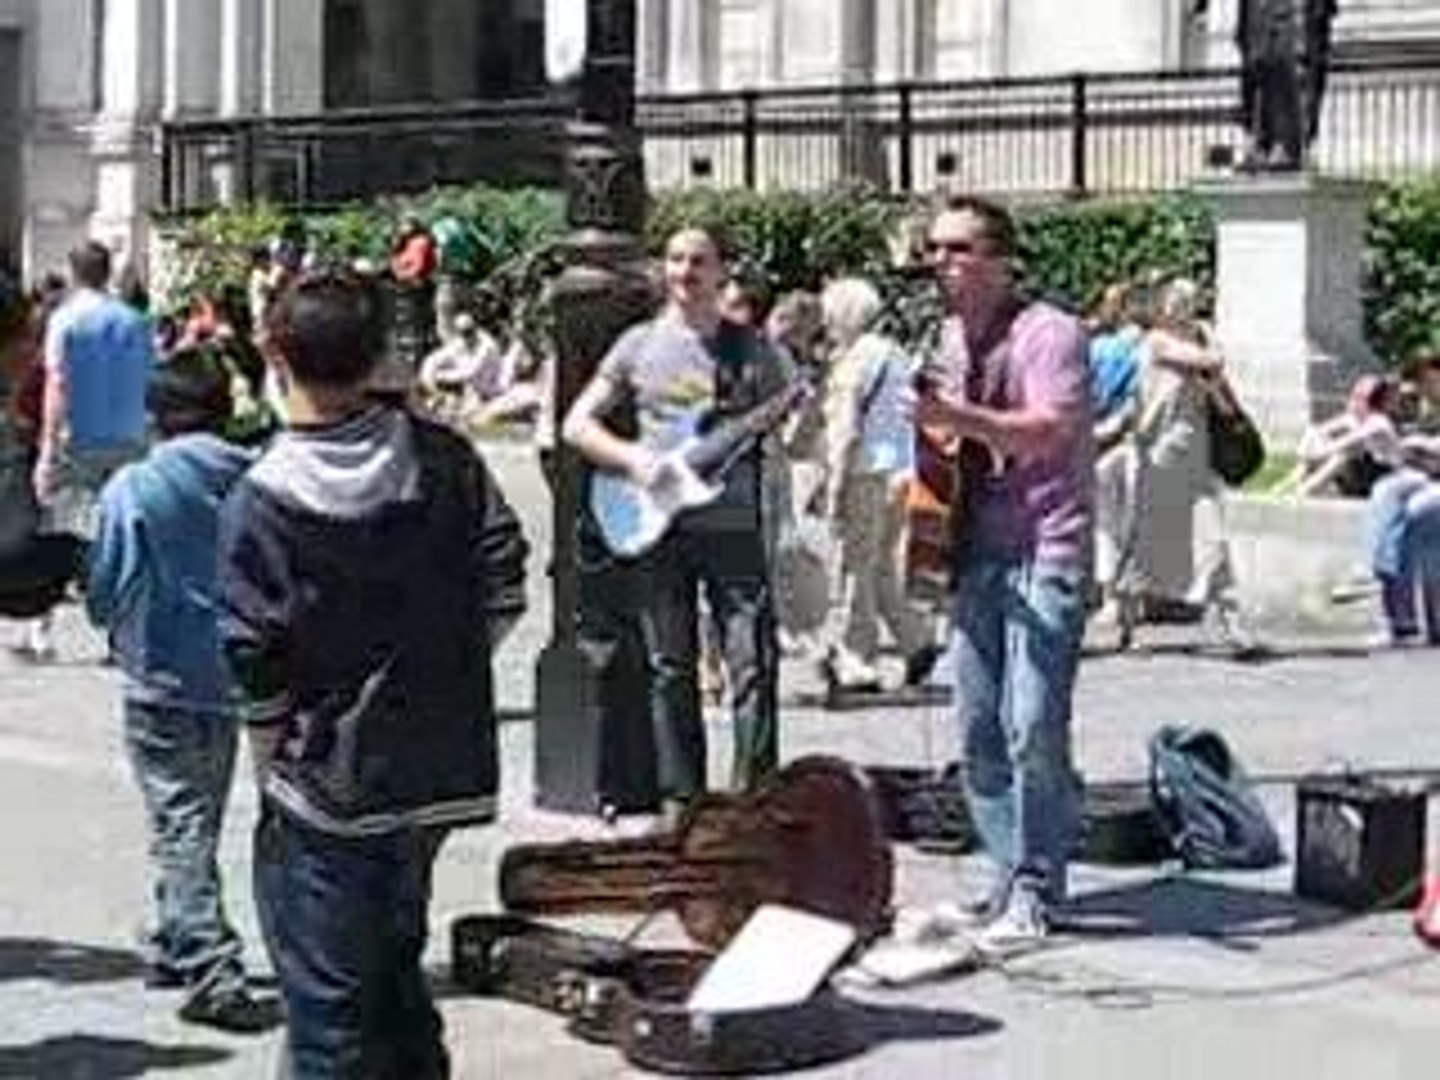 Two musicians at the Trafalgar Square